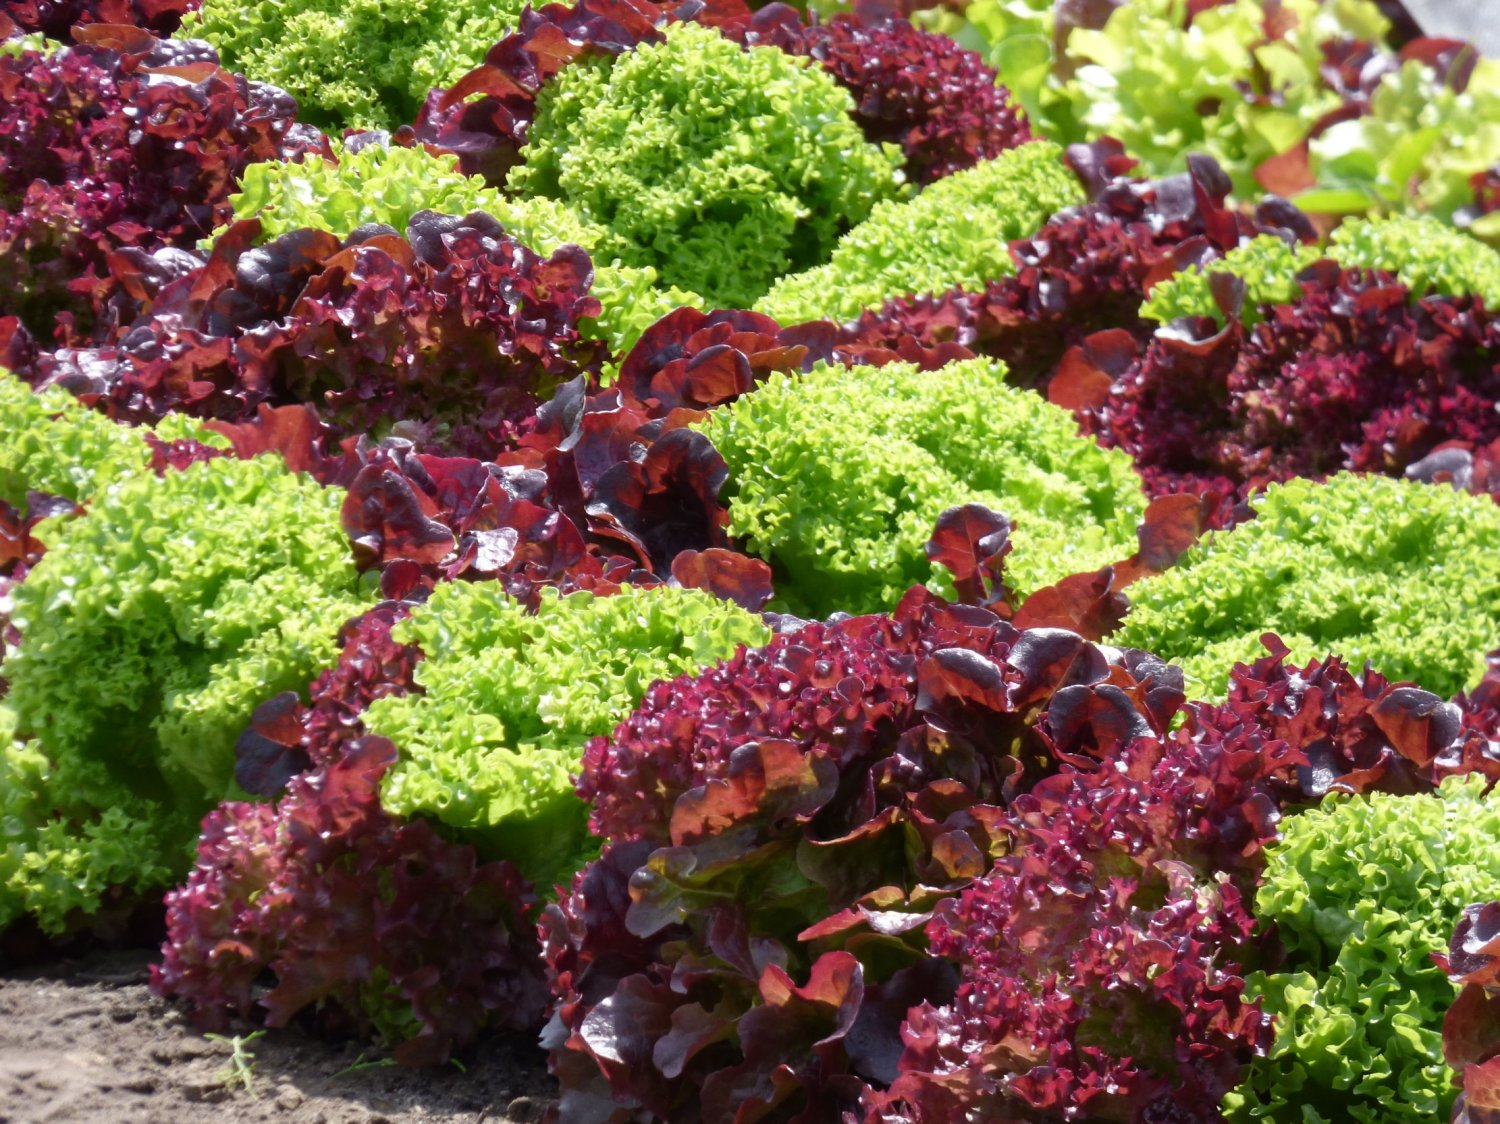 250 Seeds Salad Bowl Red + Green Variety Heirloom Lettuce mix- Garden Vegetable- Top Quality